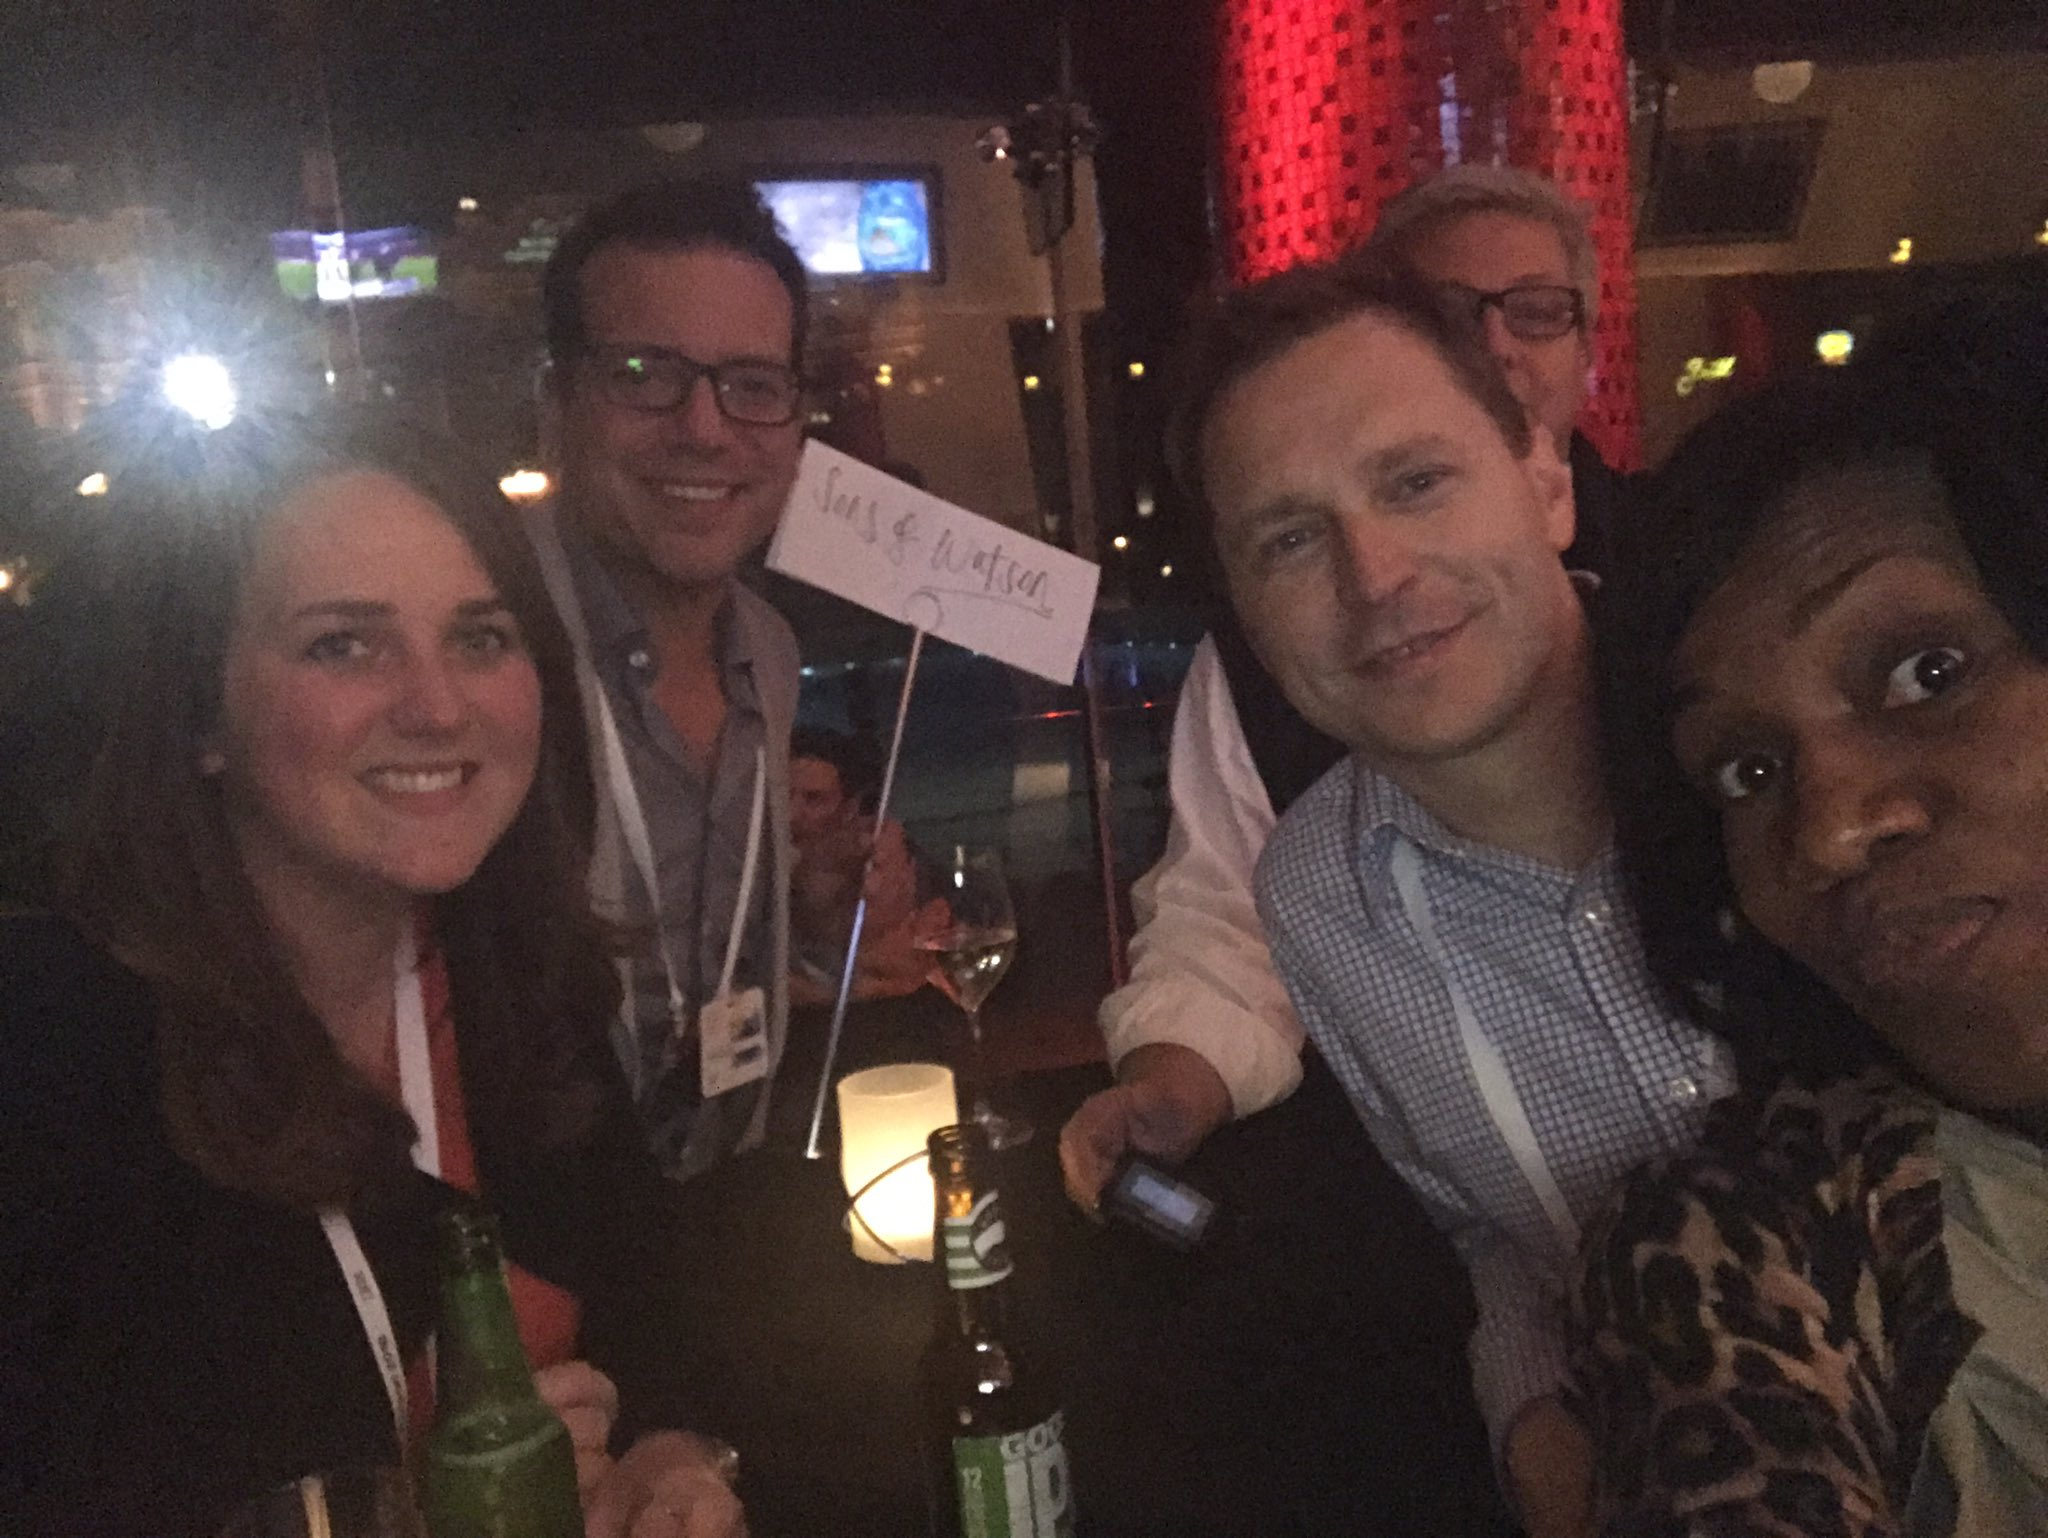 Team Sons of Watson at #ibmwow trivia night!!! Pity we couldn't ask @ibmwatson for the answers!! https://t.co/lsghuf7Dy2